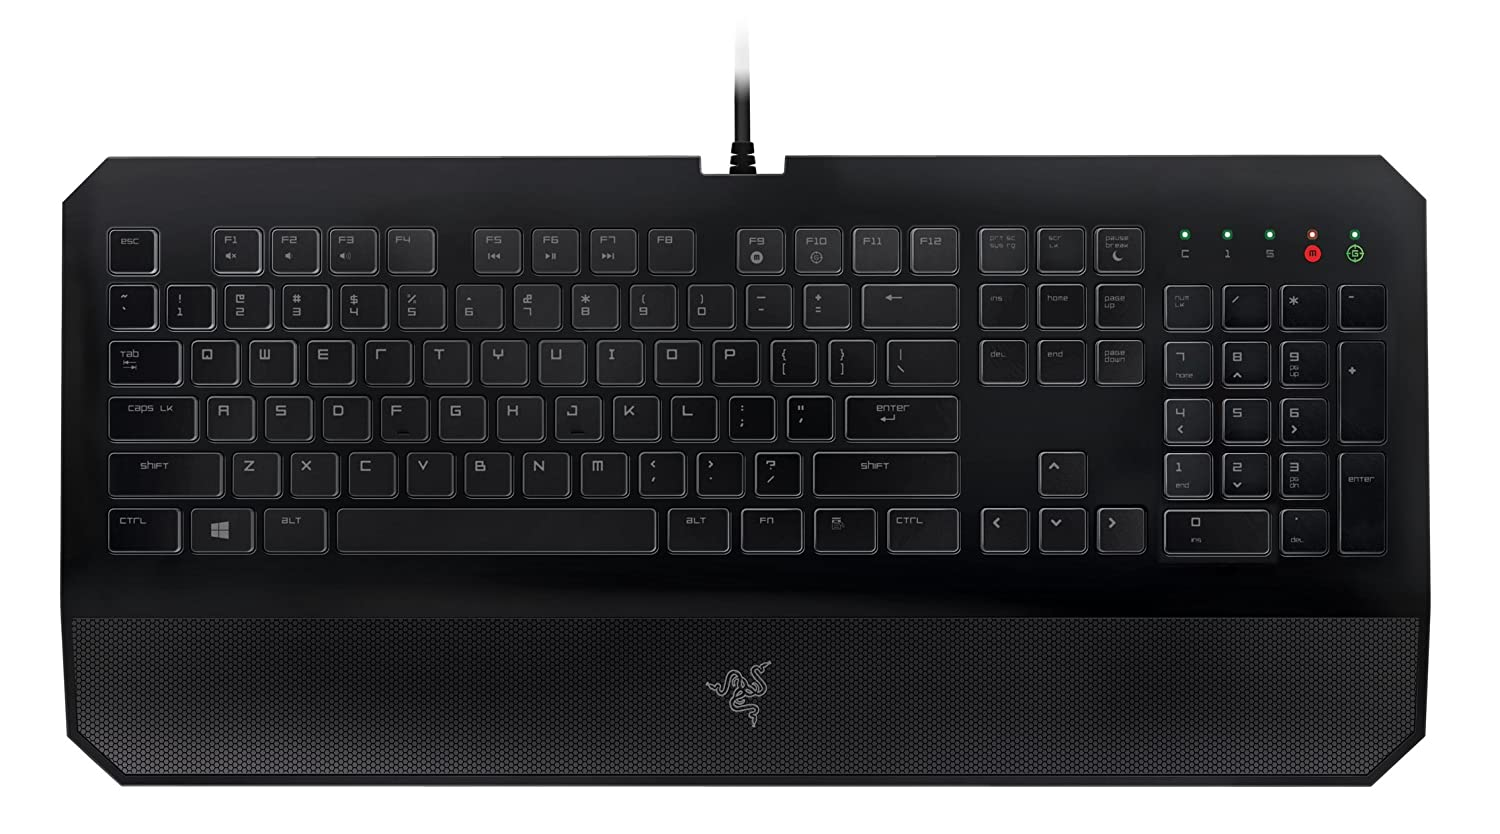 Amazon.com: Razer DeathStalker Essential Gaming Keyboard - Ergonomic  Gaming-Grade Membrane Keyboard With Wrist-Rest: Computers & Accessories